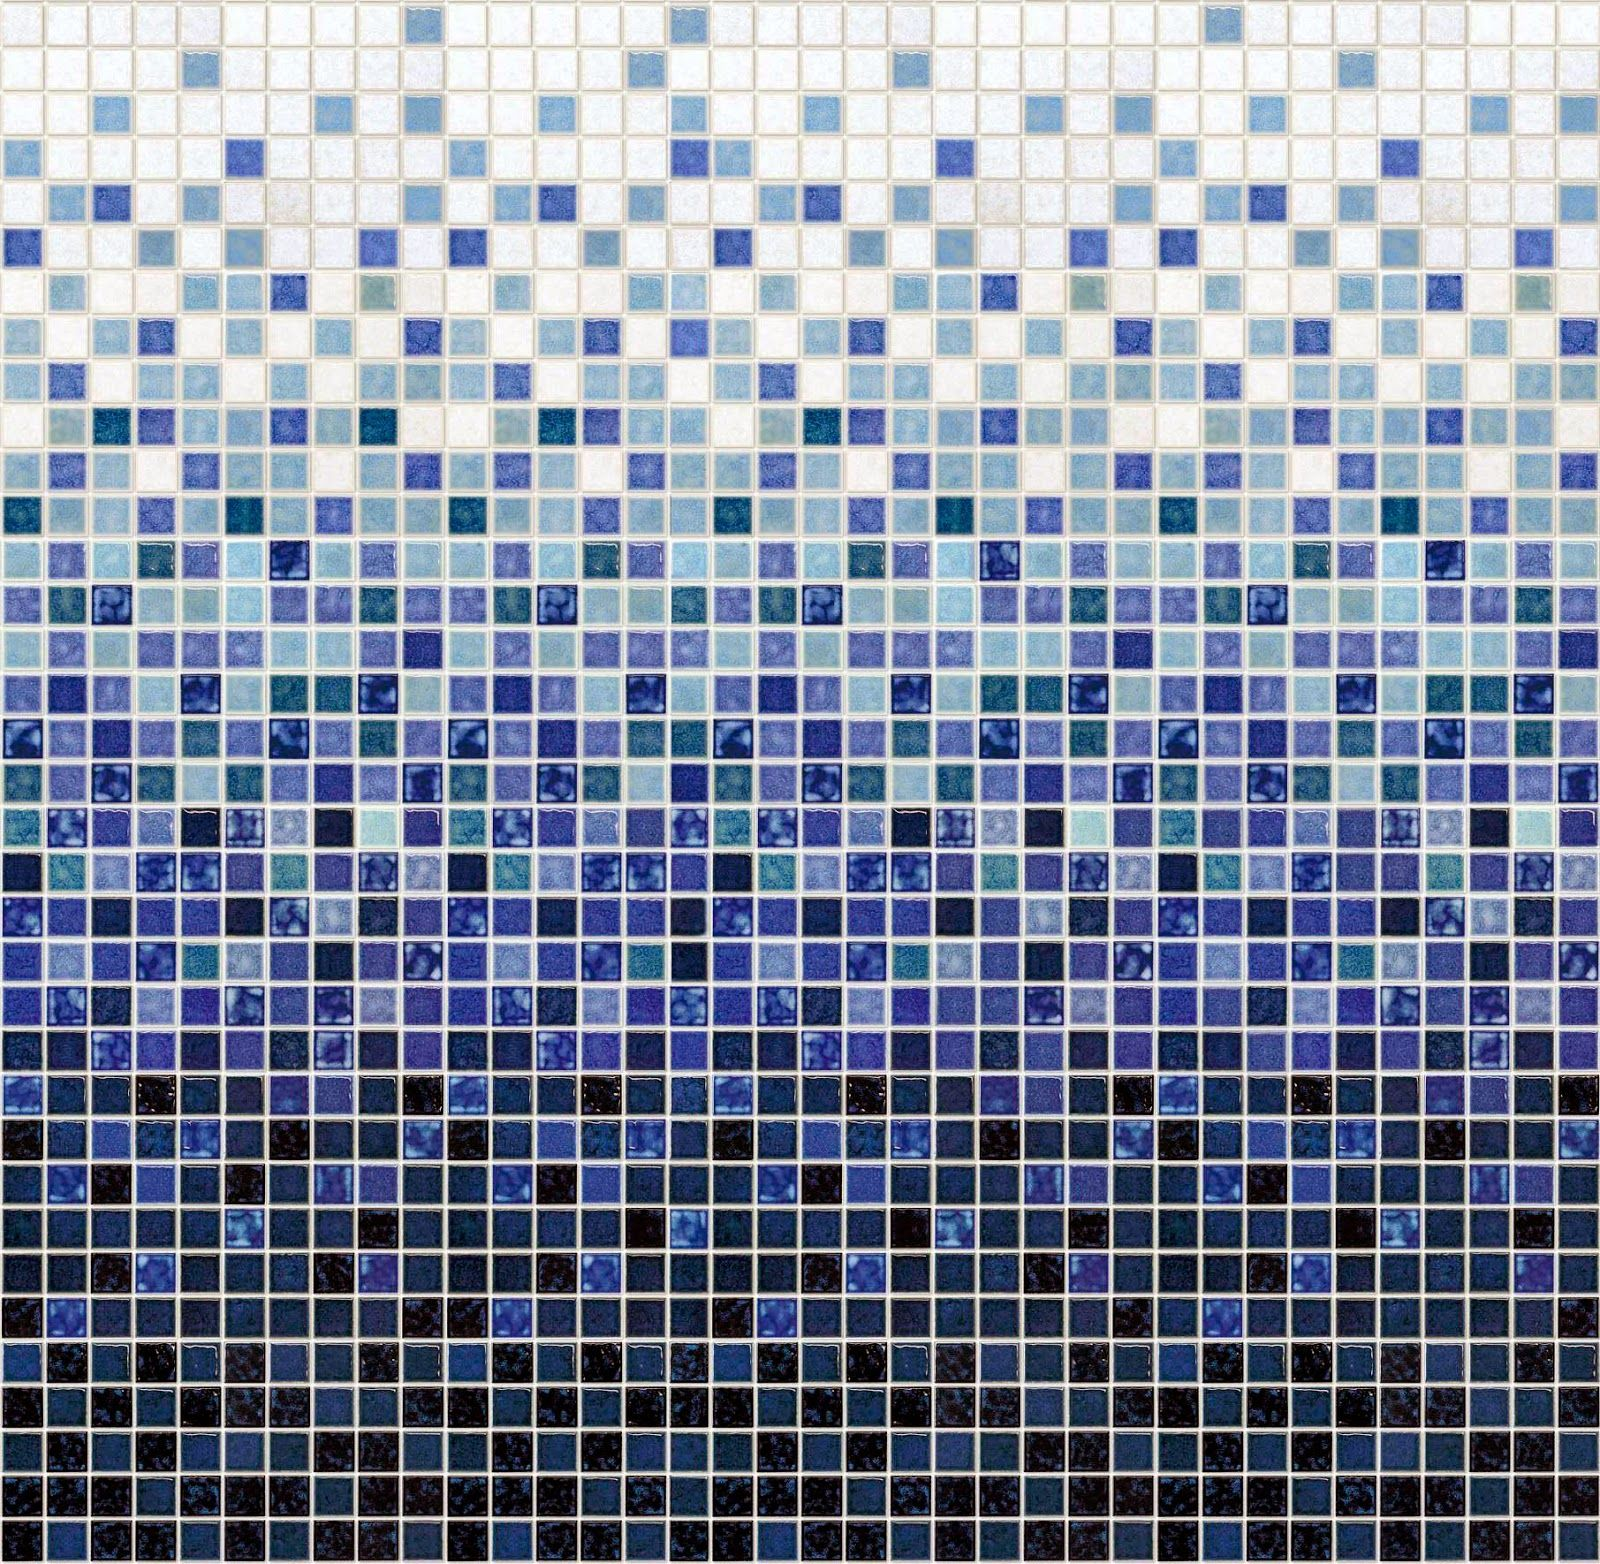 Texture seamless mosaic | mosaic | Pinterest | Mosaics, Walls and ...